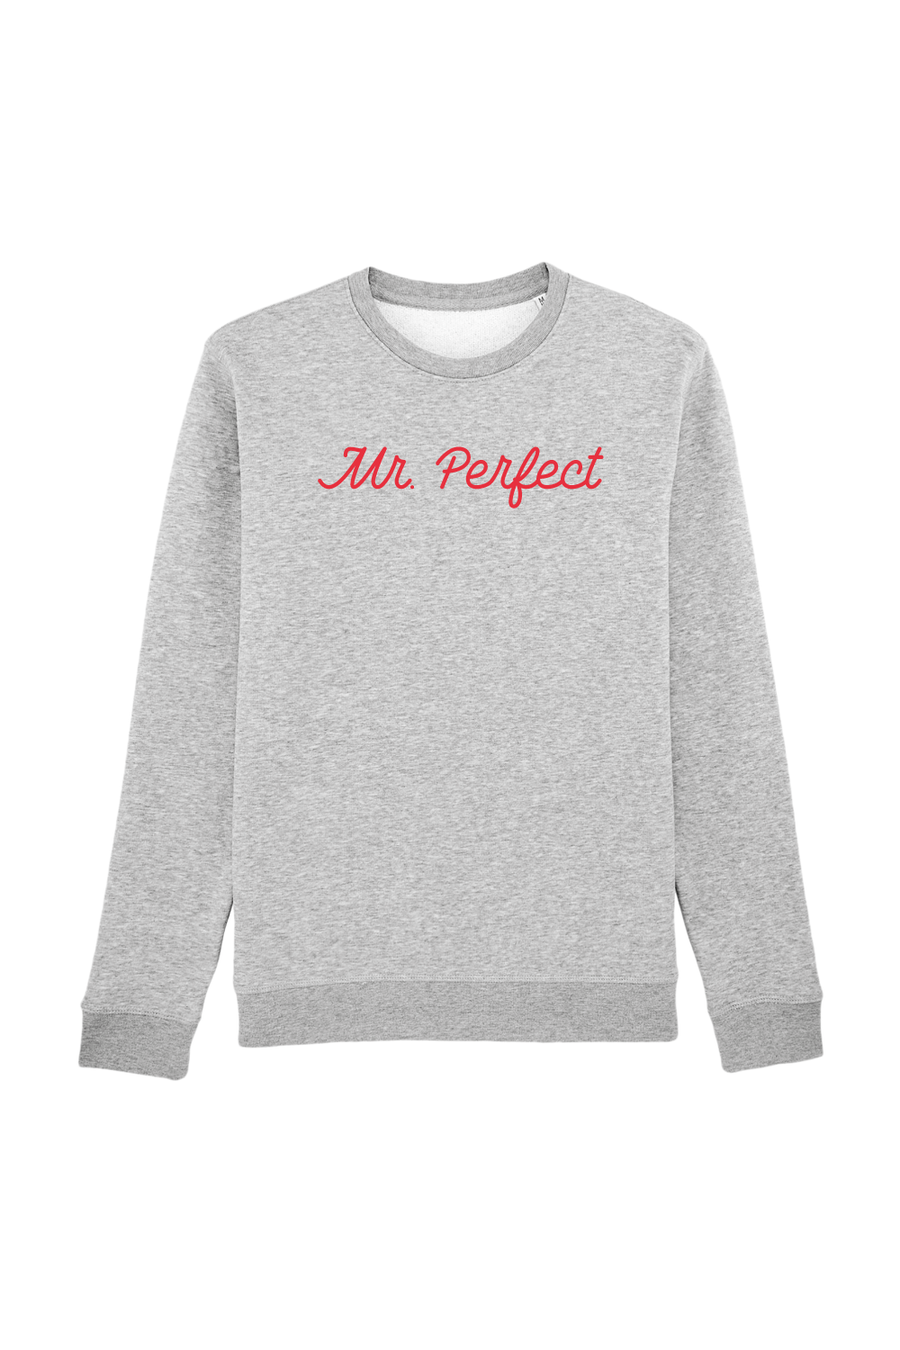 Mr perfect unisex - Joh Clothing